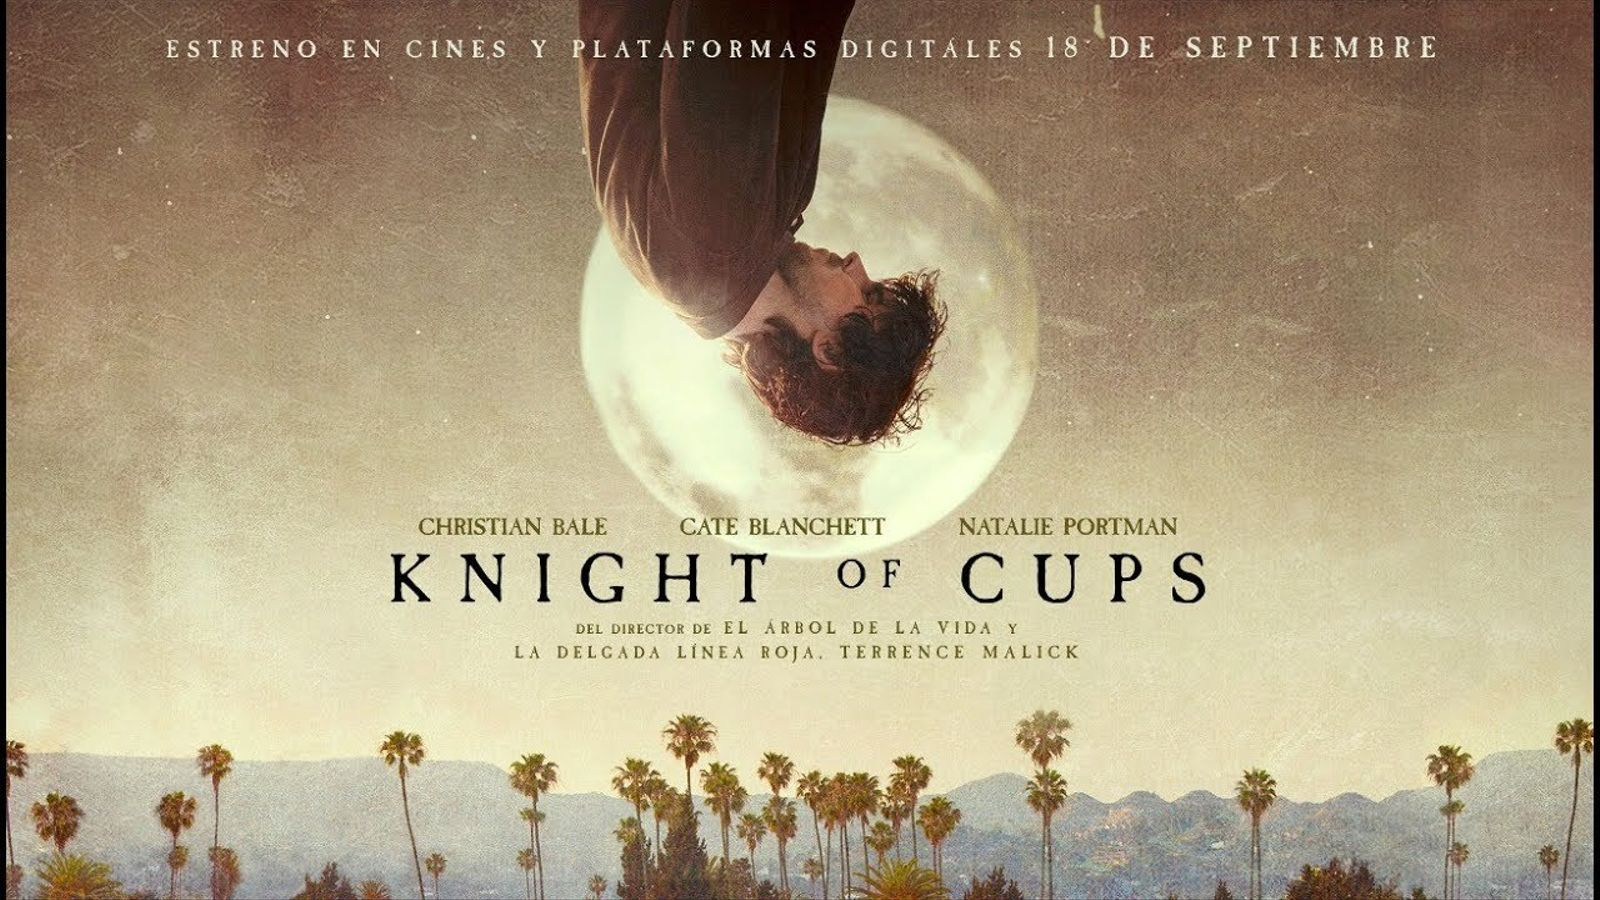 Tràiler de 'Knight of cups'